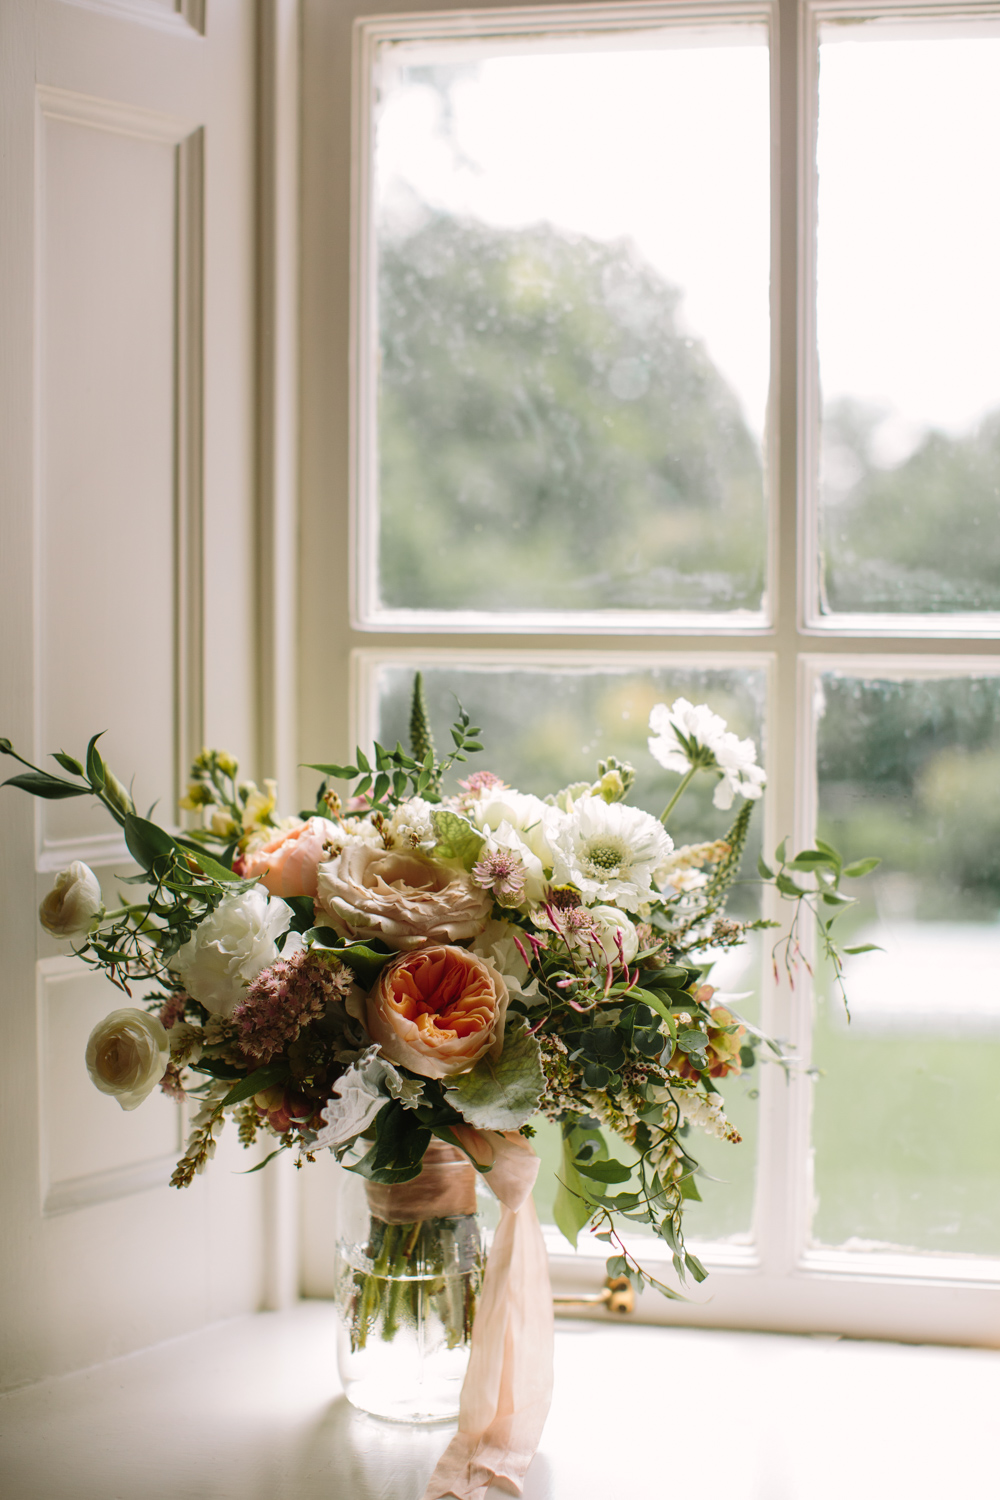 Floral bouquet with blush silk ribbons on a windowsill